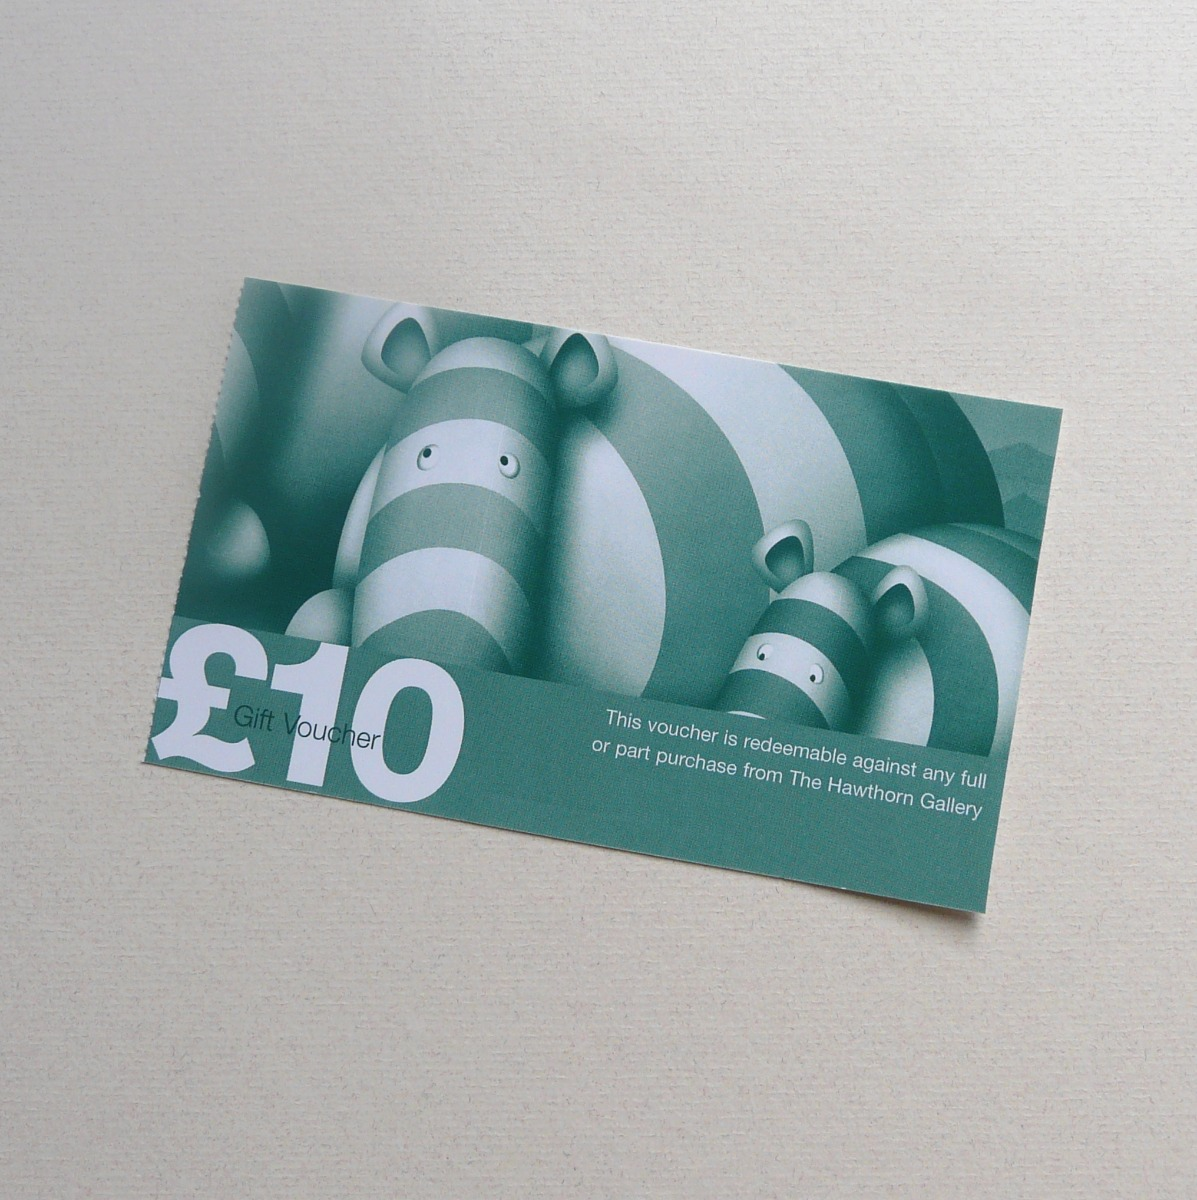 \u00A310 Gift Voucher by The Hawthorn Gallery